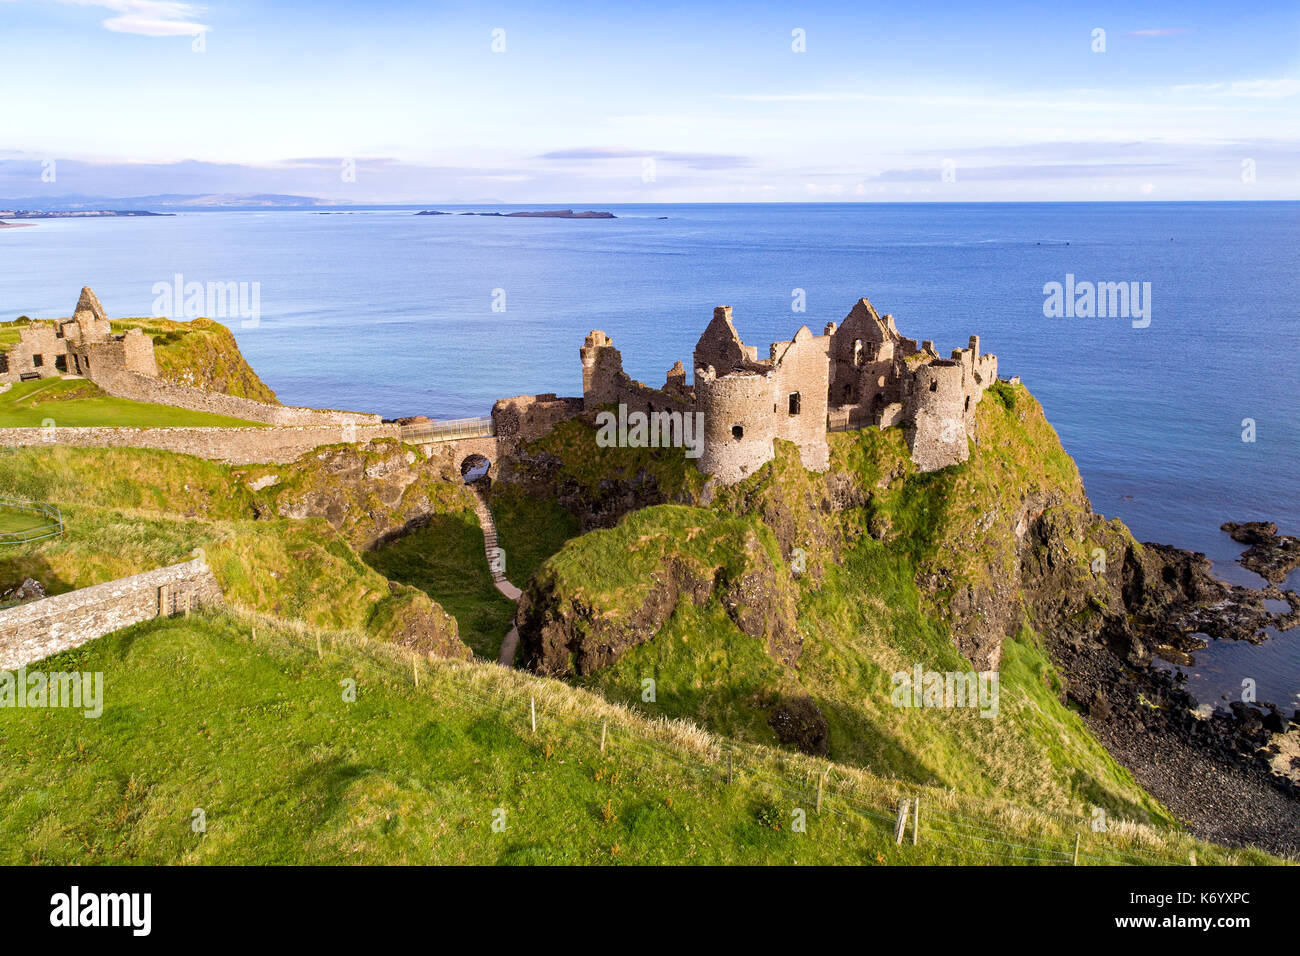 Ruins of medieval Dunluce Castle on a steep cliff. Northern coast of County Antrim, Northern Ireland, UK. Aerial view. - Stock Image